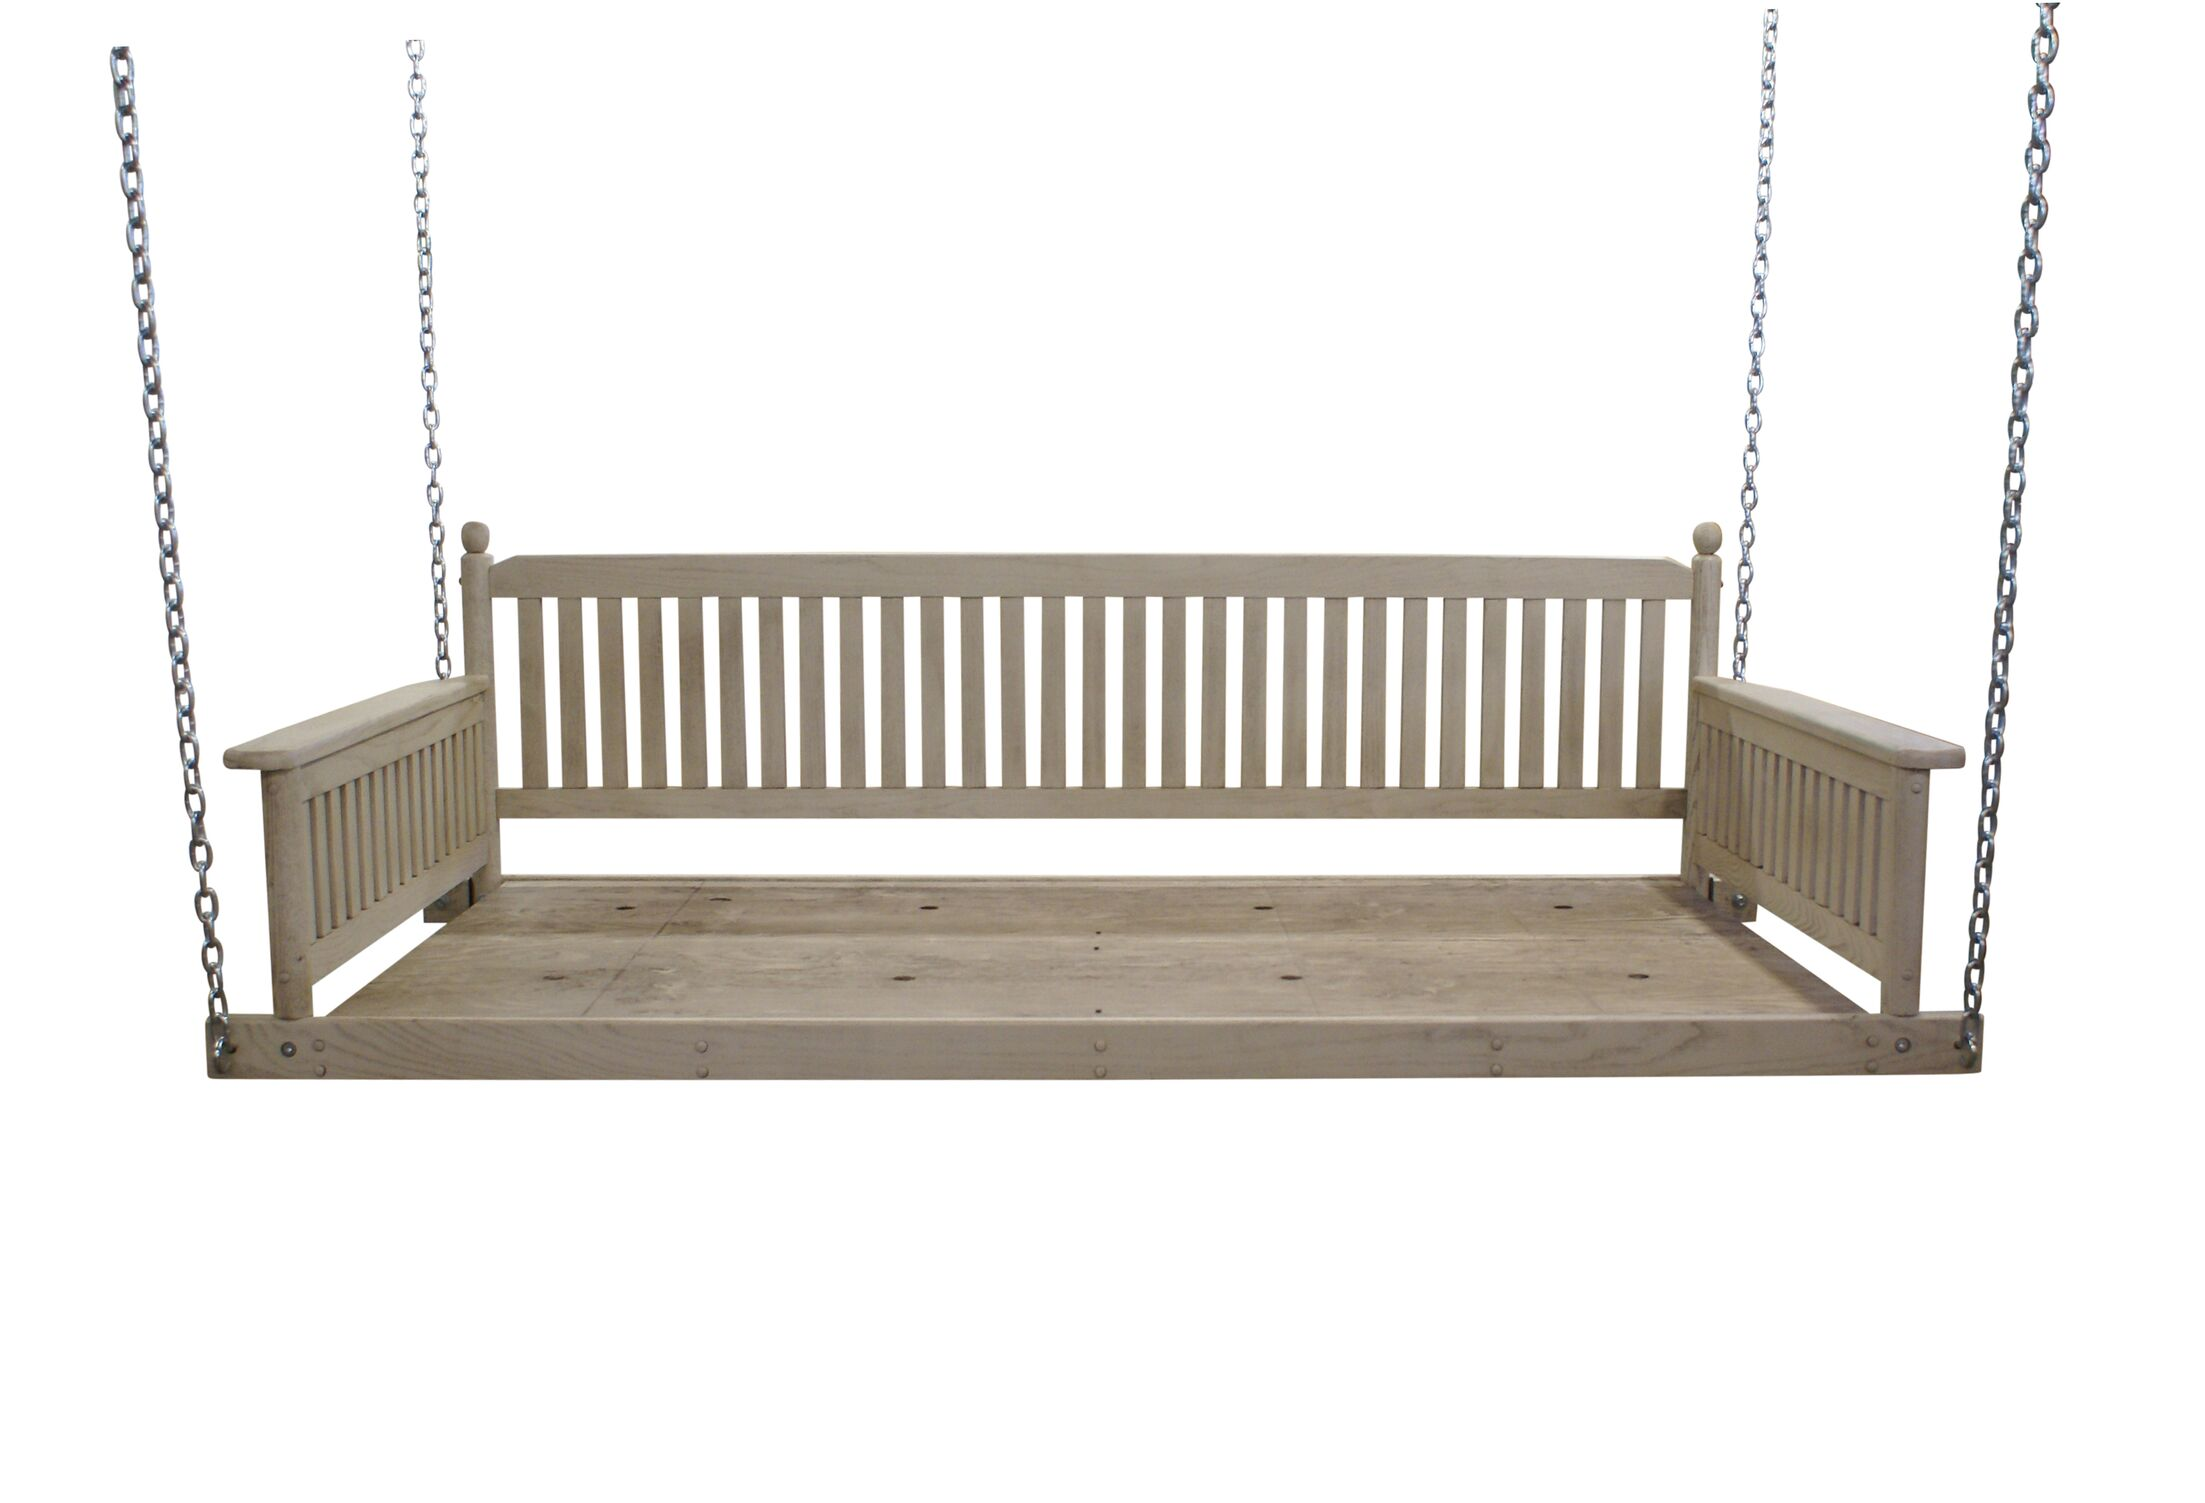 Cano Day Bed Porch Swing Finish: Antique Stone